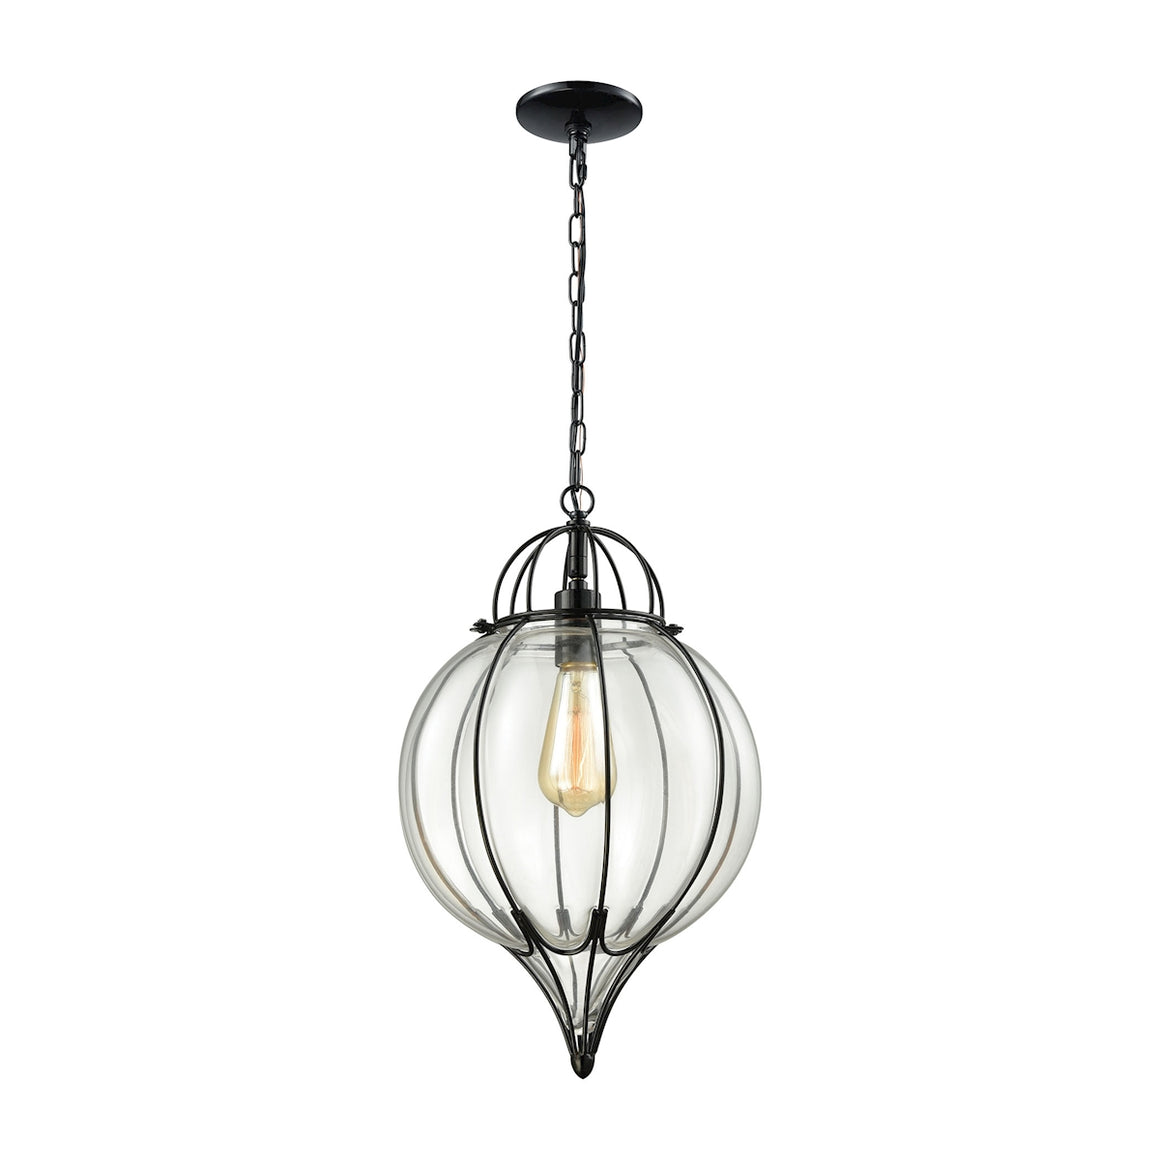 Adriano 1 Light Pendant In Gloss Black With Clear Blown Glass 14521/1 by Elk Lighting